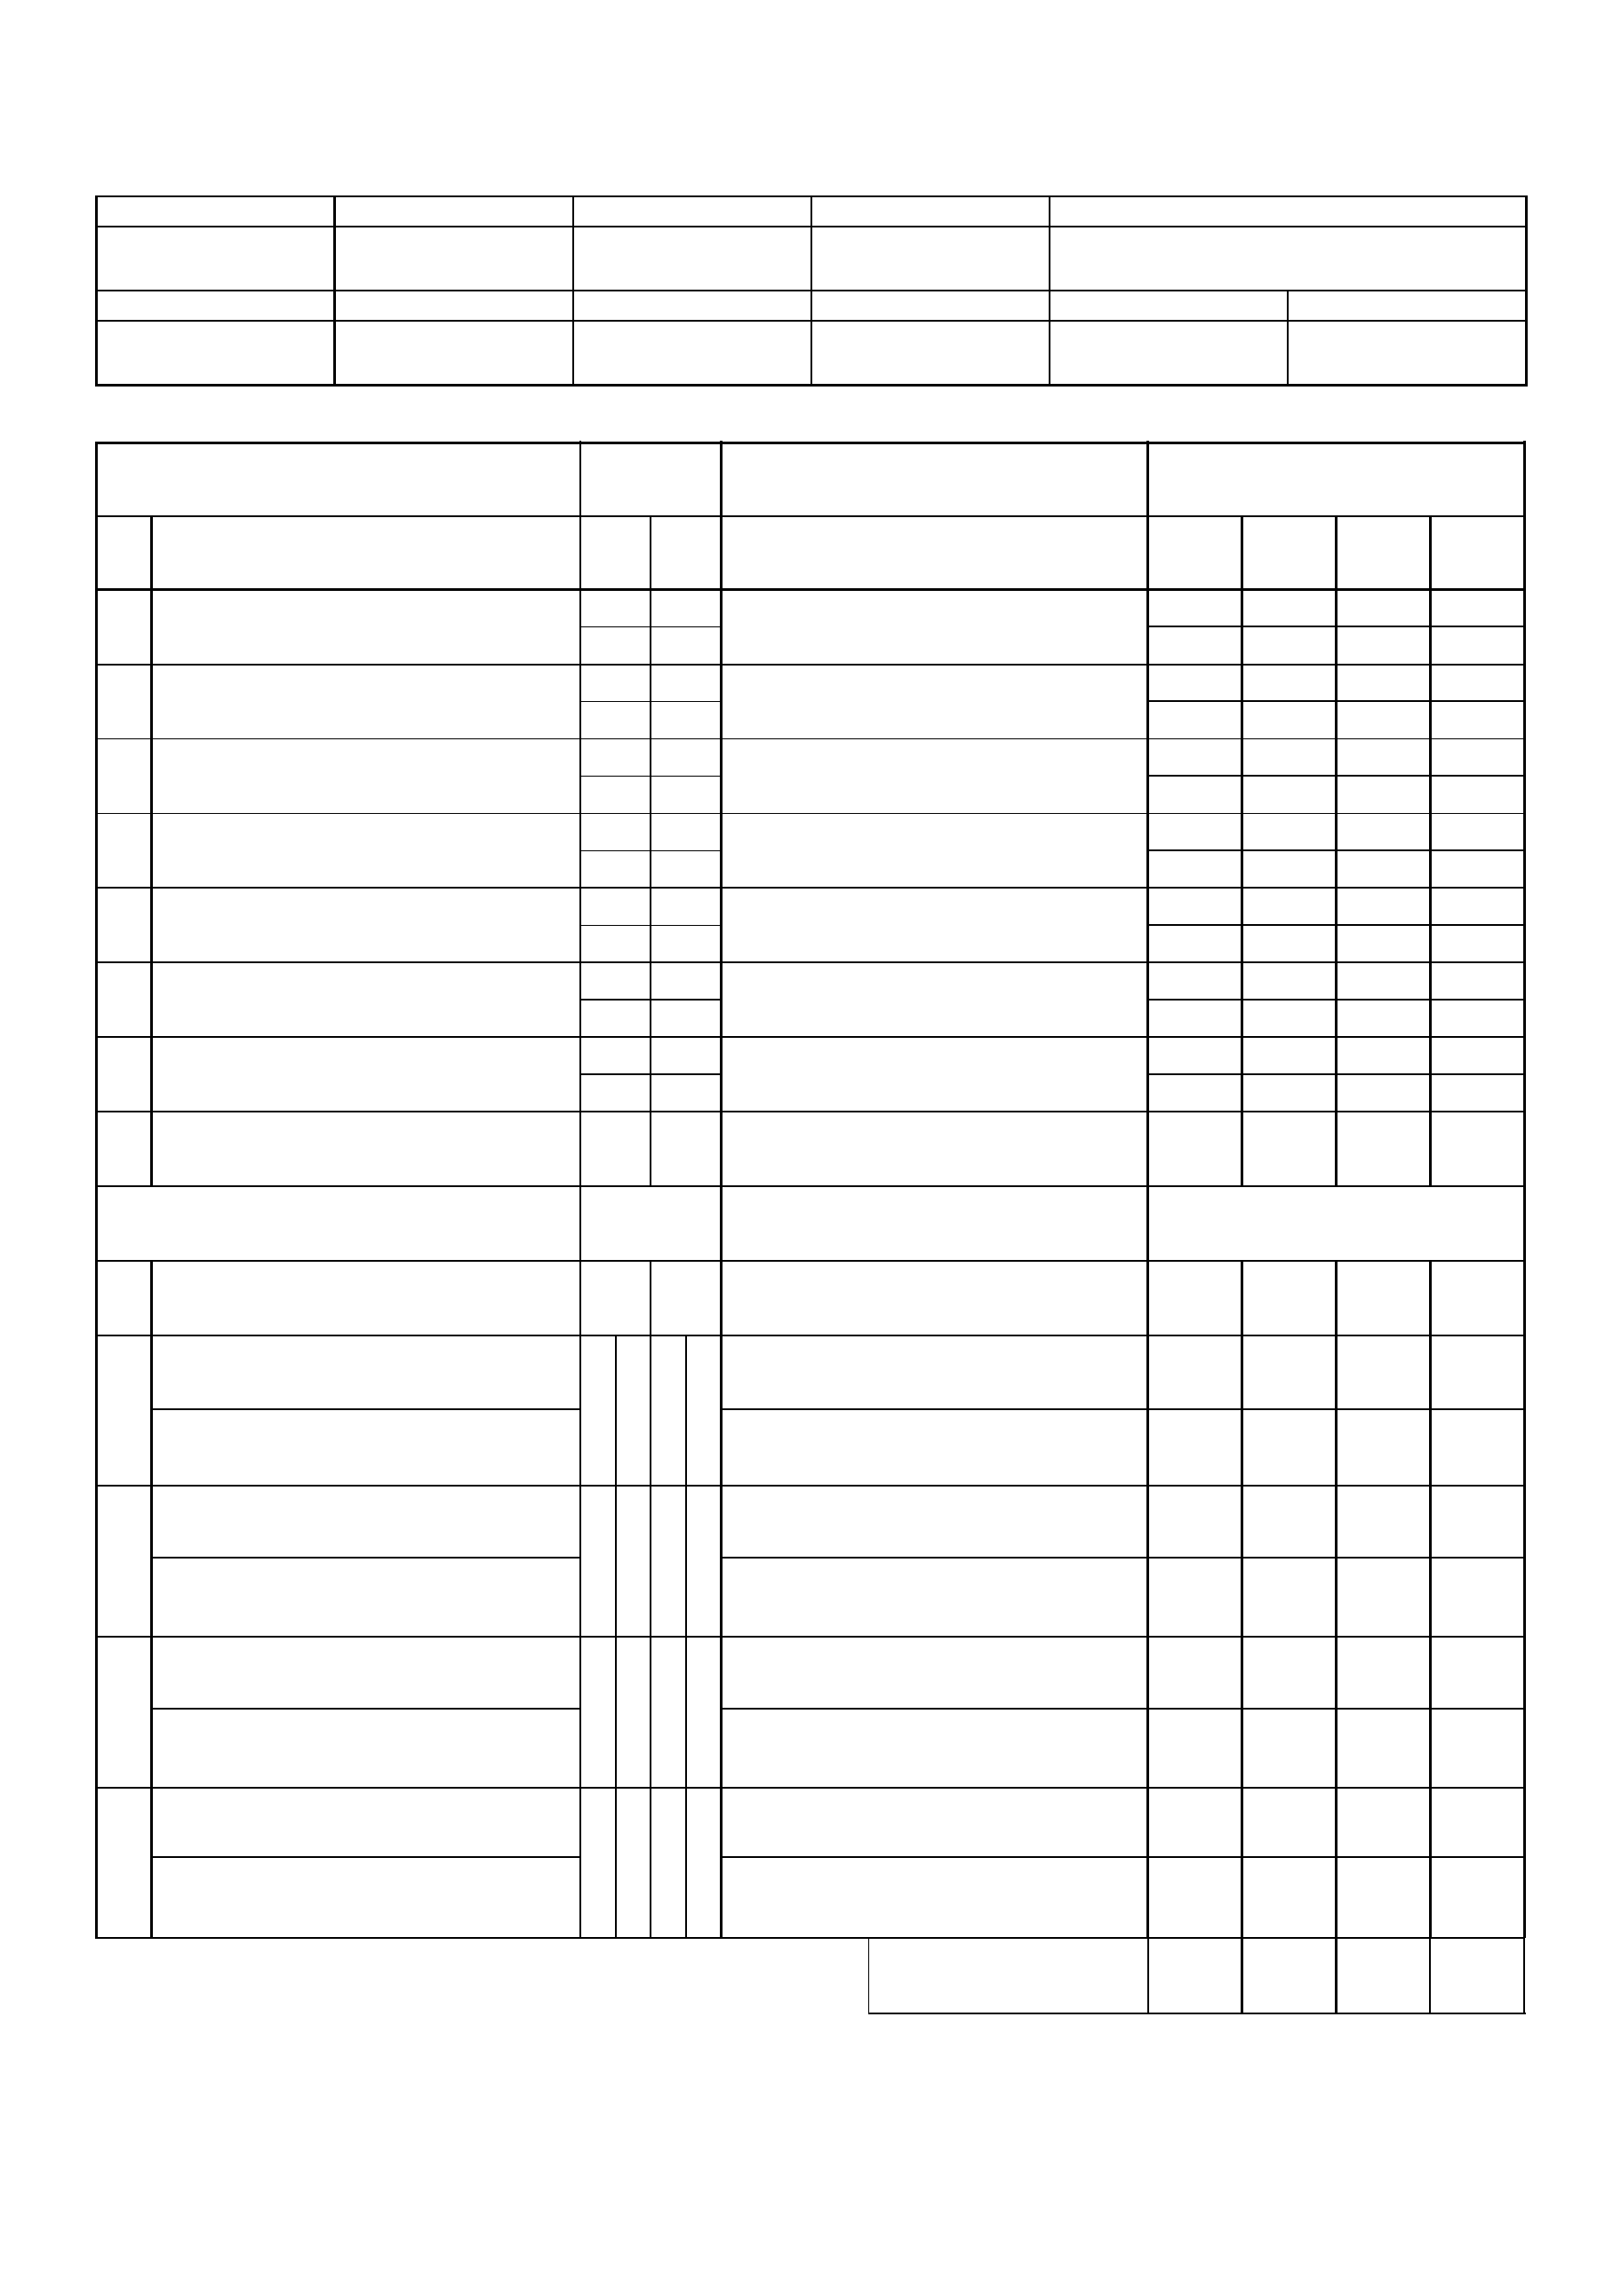 tennis score sheet template free download